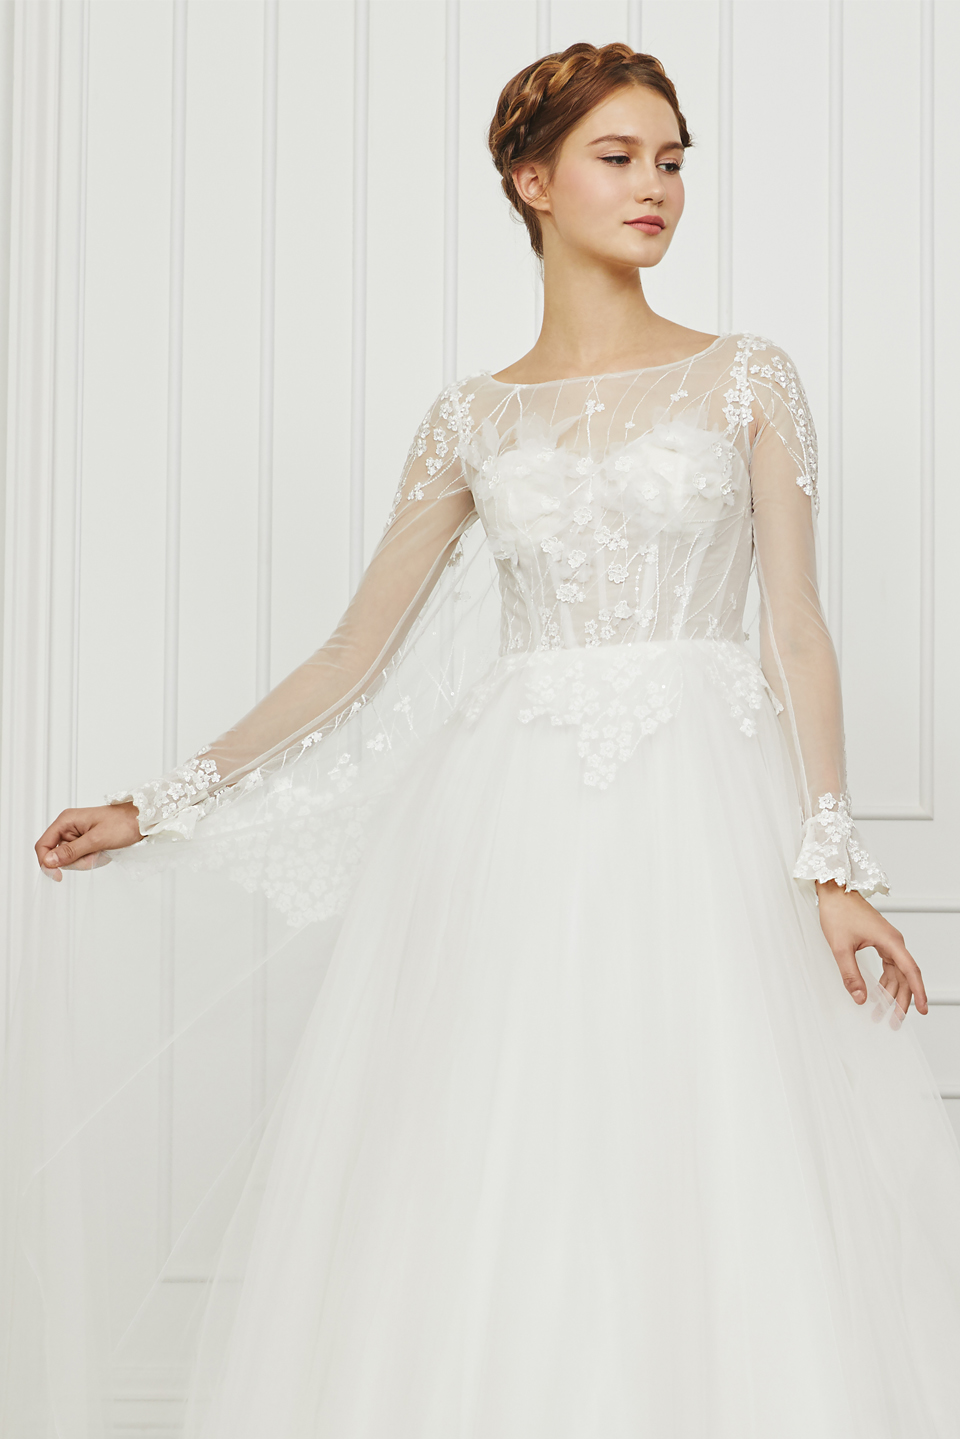 Bridal Gowns - Etherealthelabel